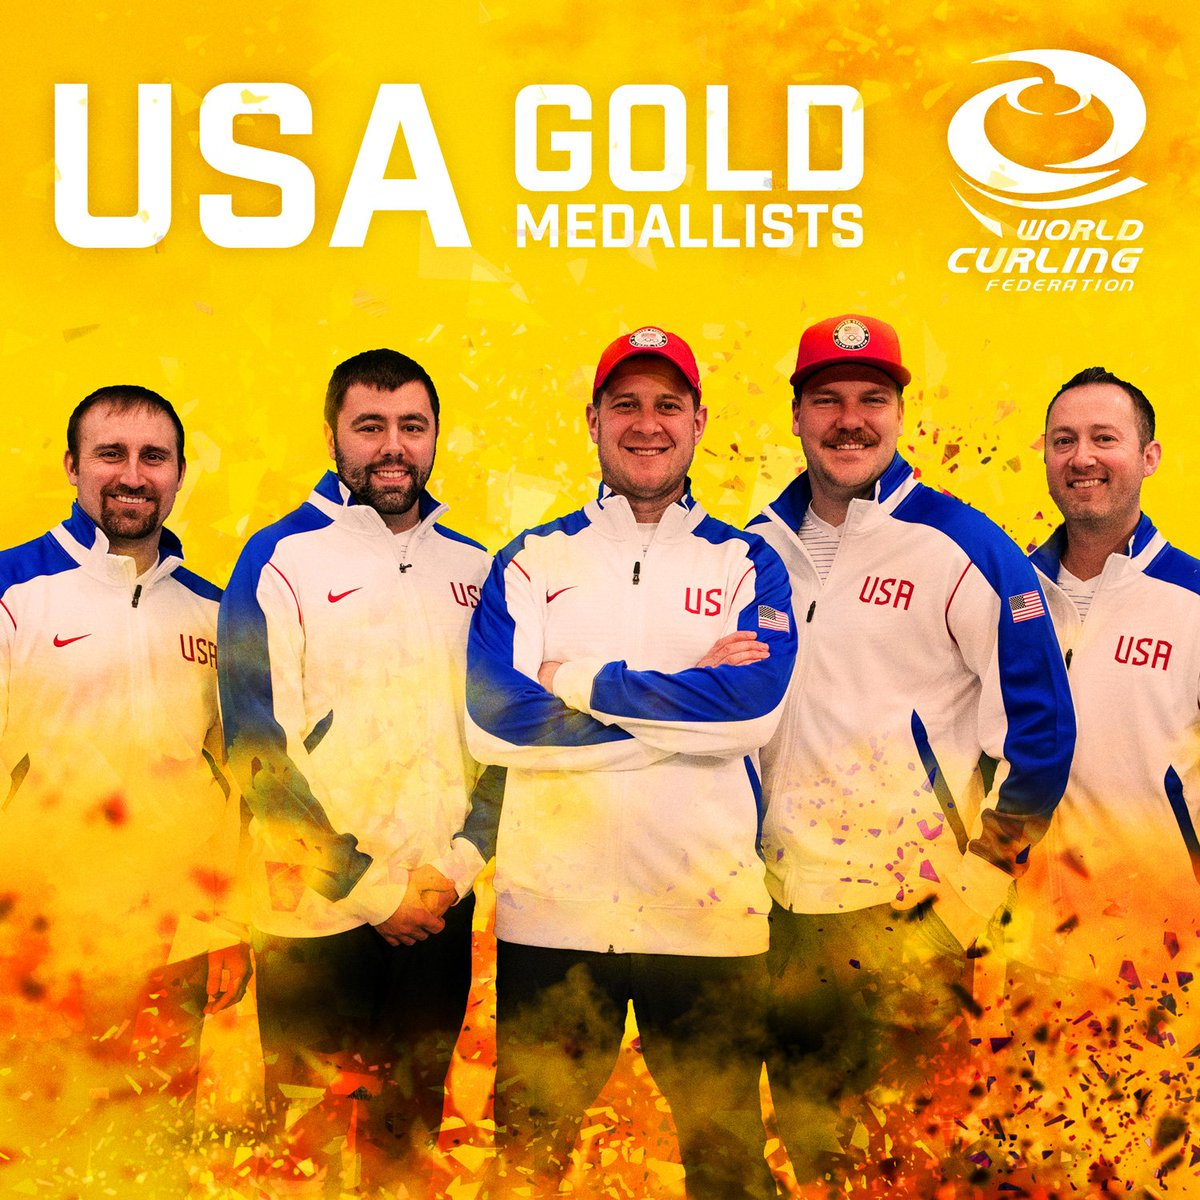 Congratulations @TeamShuster!  USA win the men's Olympic #gold medals  #curling #PyeongChang2018 #Olympics #USA @TeamUSA @usacurl